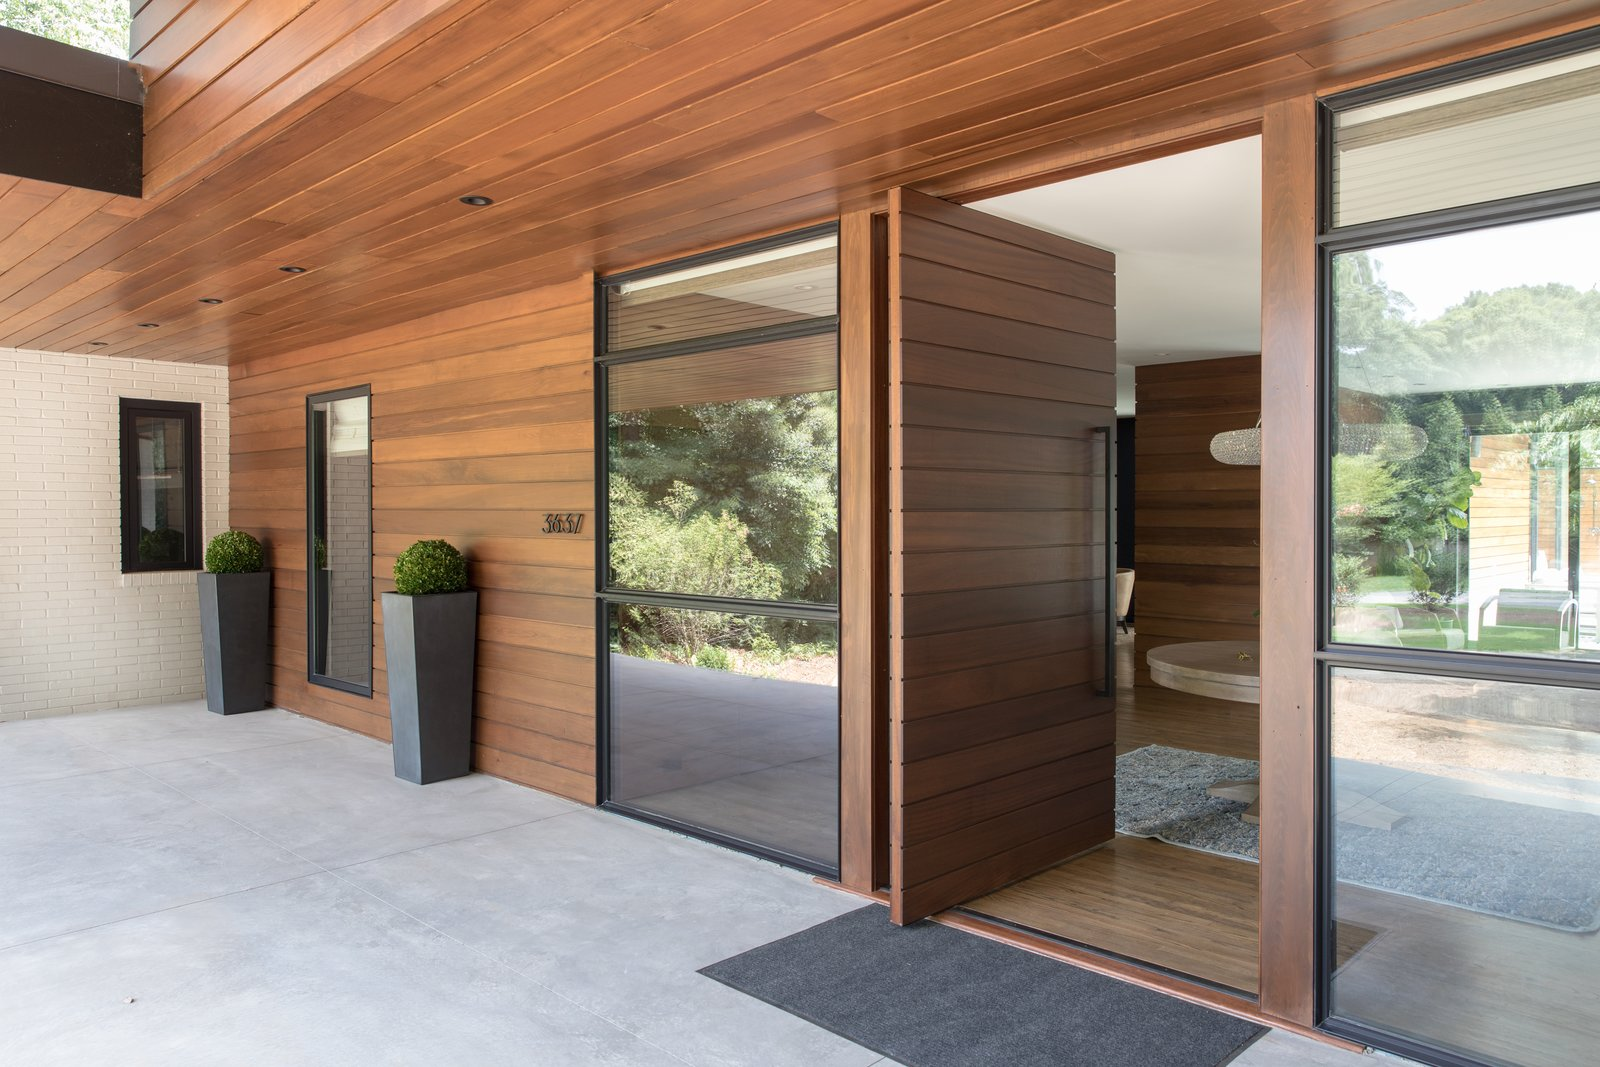 Exterior, Metal Roof Material, Mid-Century Building Type, Hipped RoofLine, and Wood Siding Material Custom pivot door at home's entry  Guinn/Henderson Residence